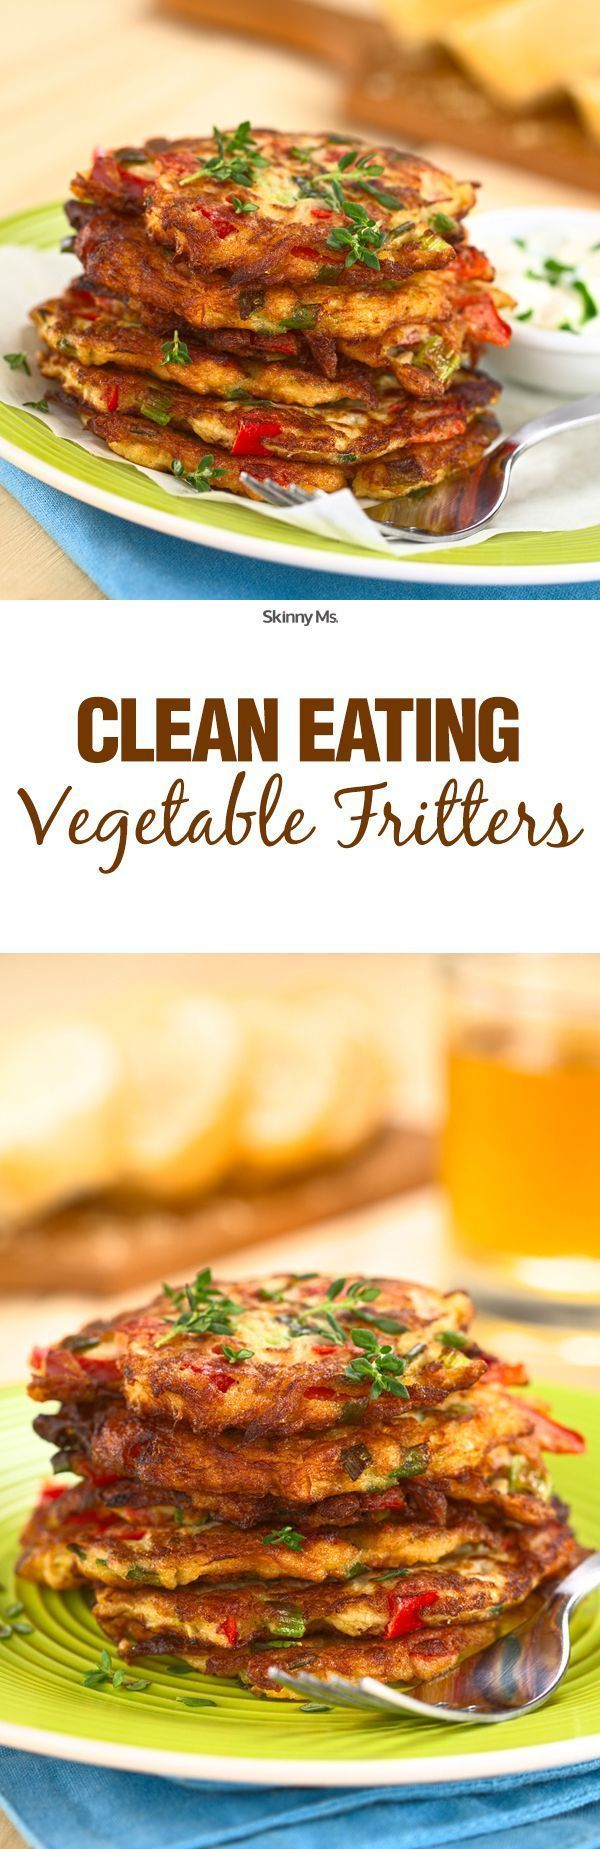 At just 200 calories per serving, these Clean Eating Vegetable Fritters are awesome for lunch or a light dinner. They pack easily too, so bringing them to work is easy!